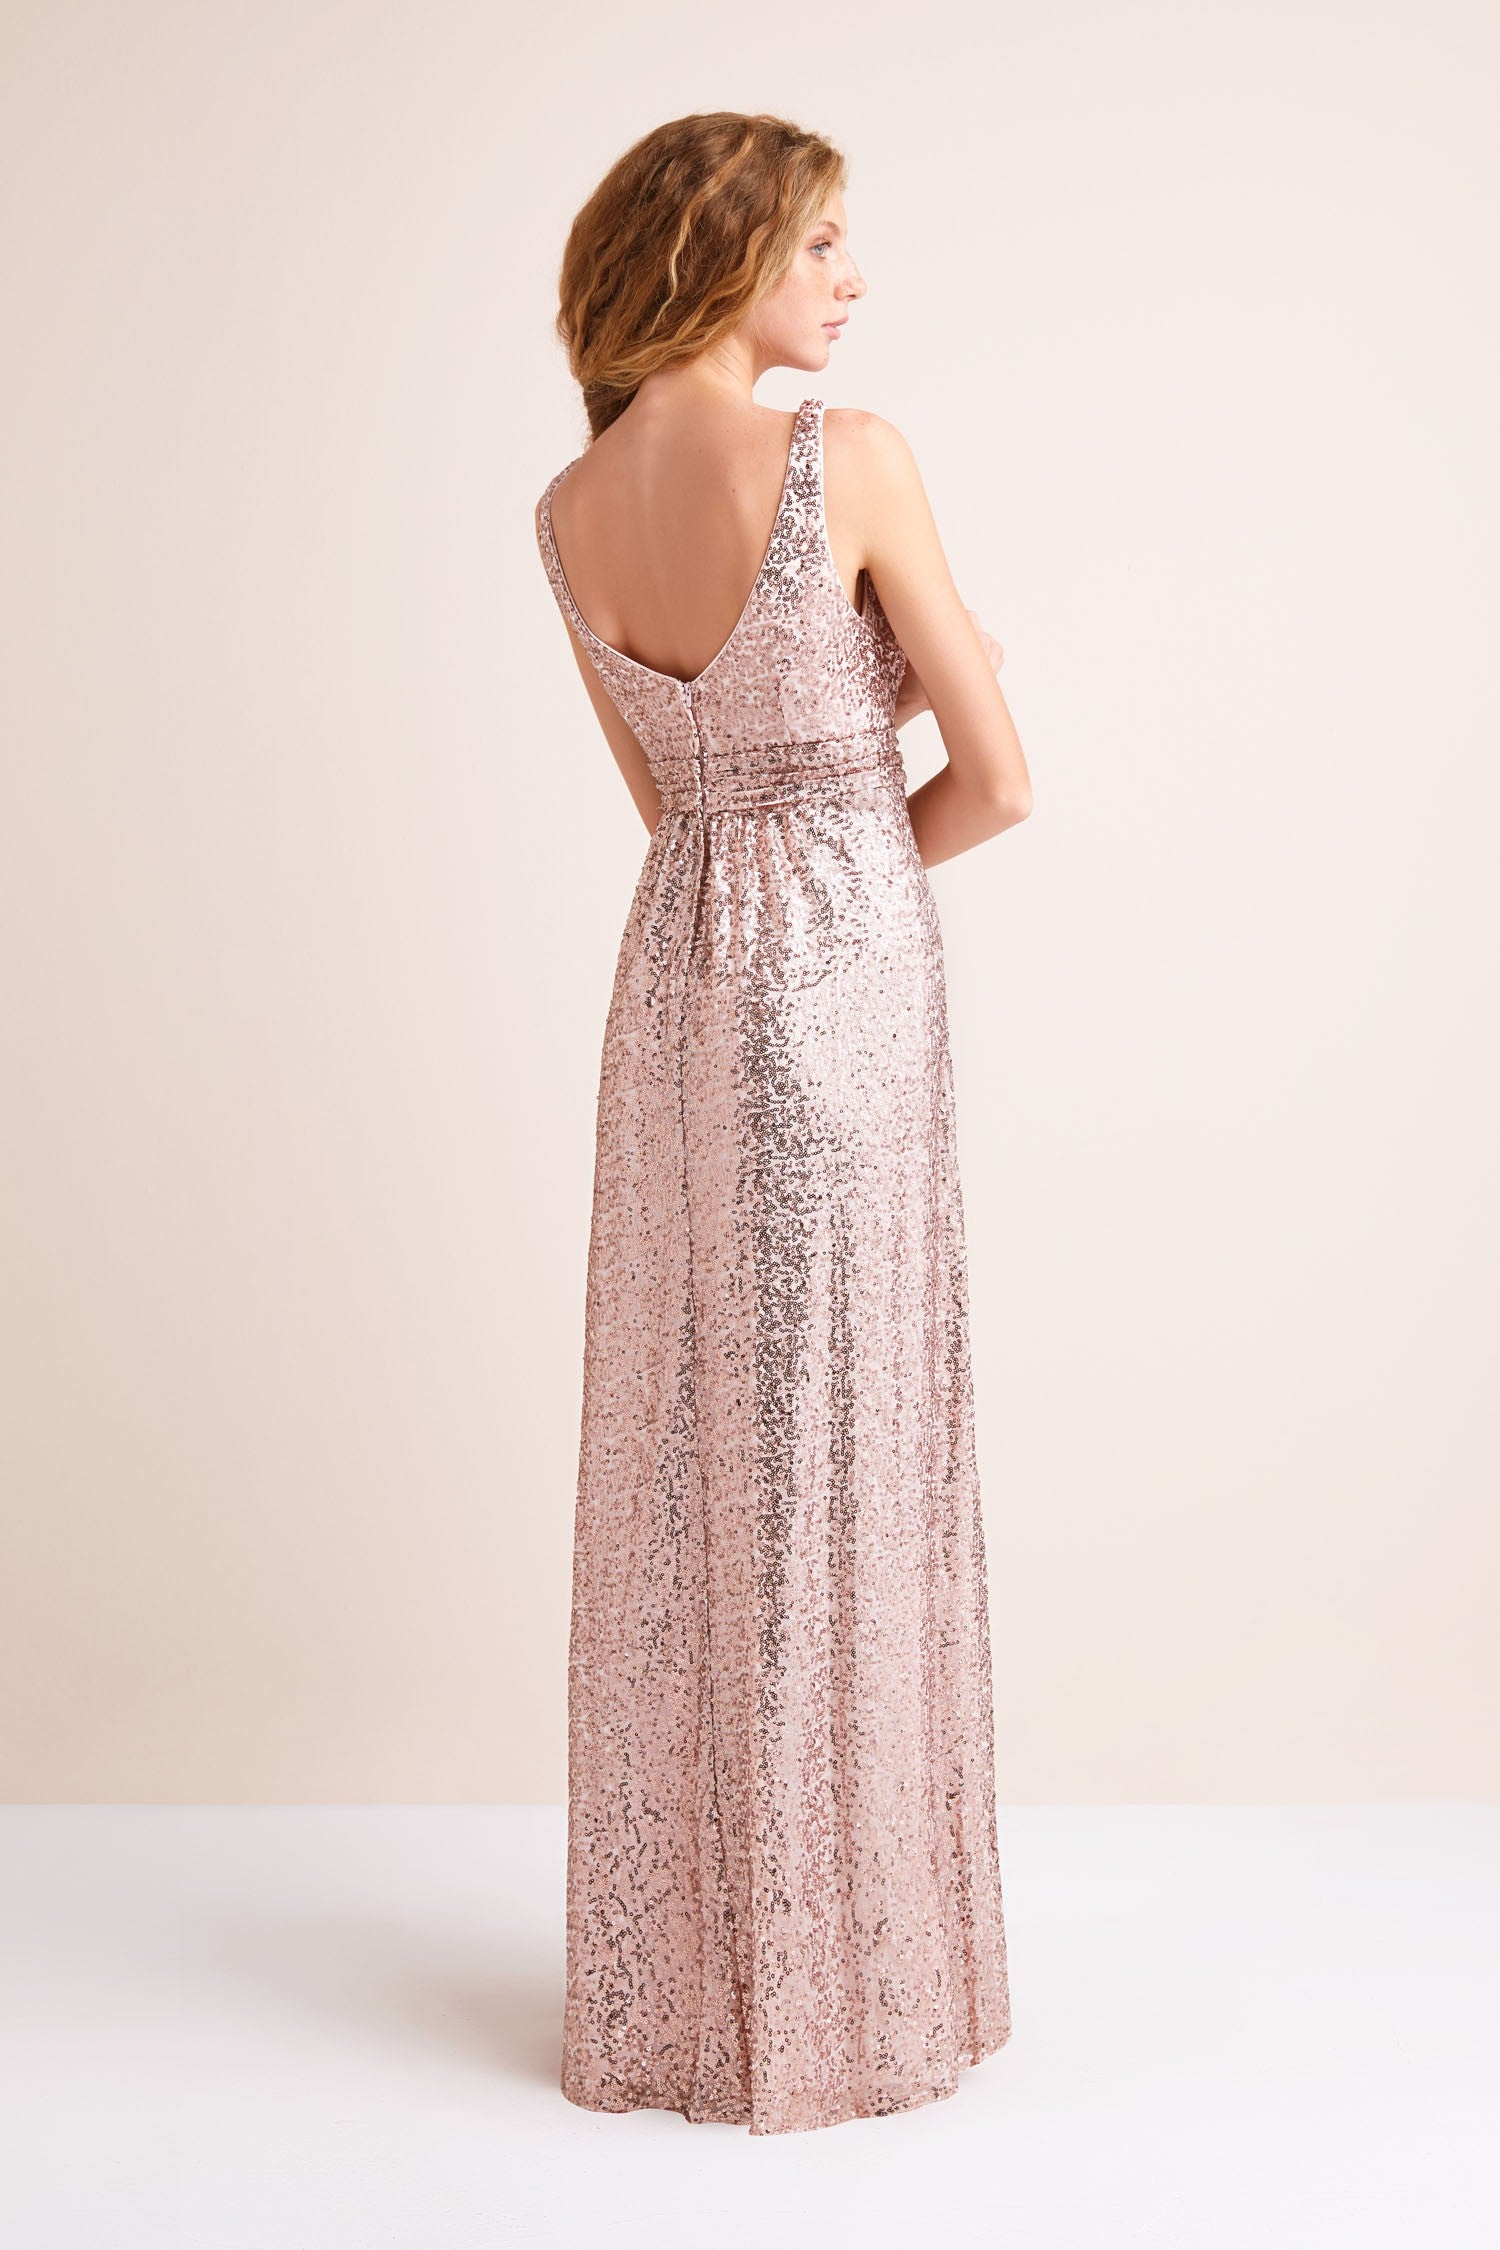 Sequin V-Neck Bridesmaid Dress with Satin Piping